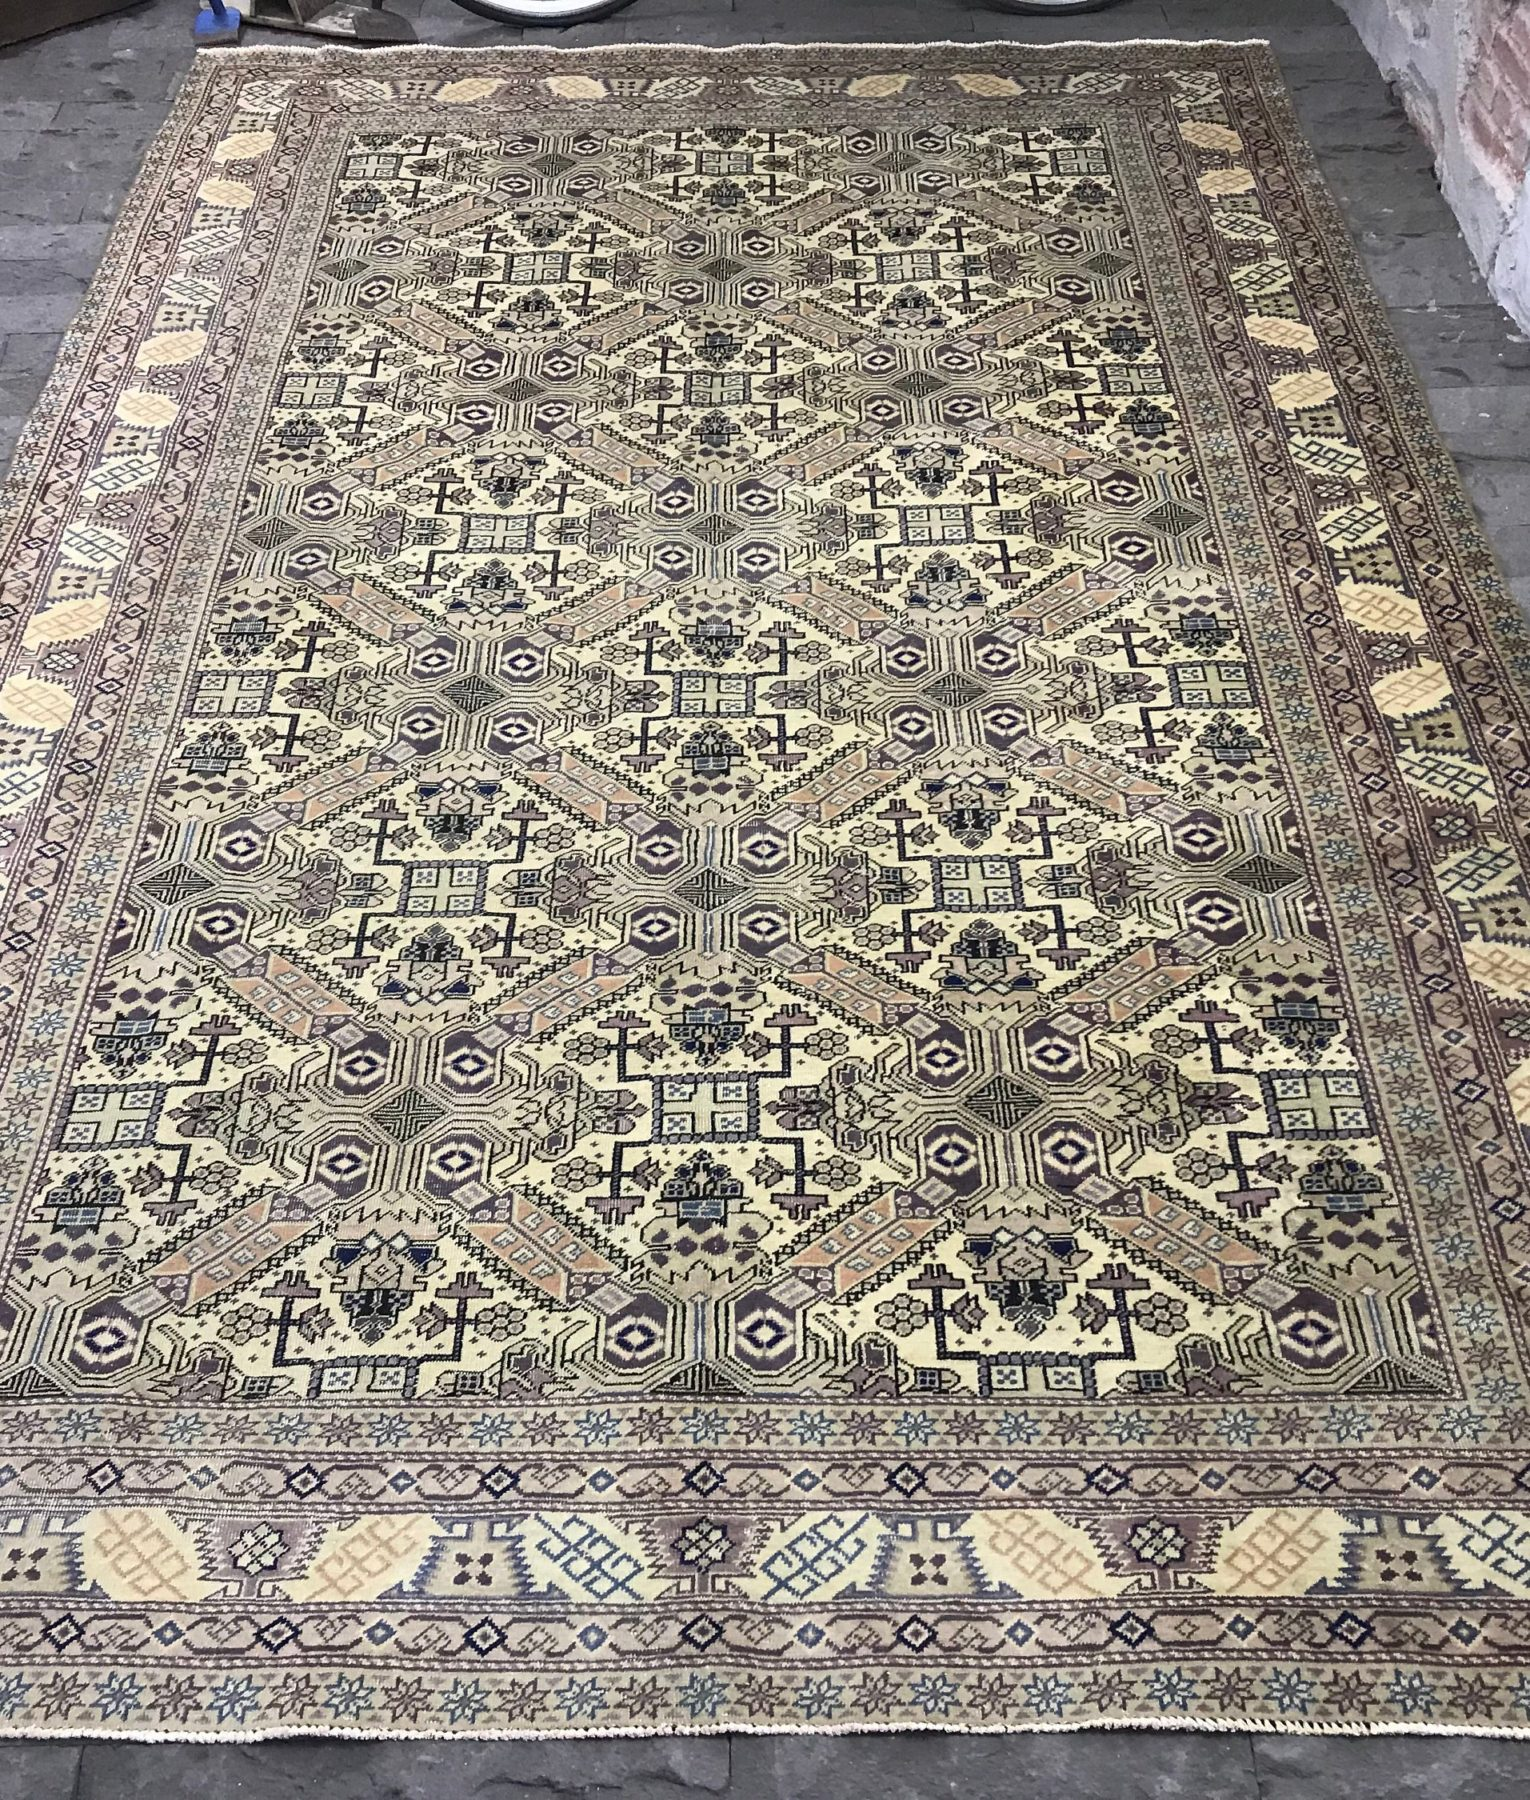 Unique Vintage Ushak Rug 7 3x10 9ft Purple Turkish Handwoven One Of A Kind Faded Beige Oushak Interior Design Free Shipping